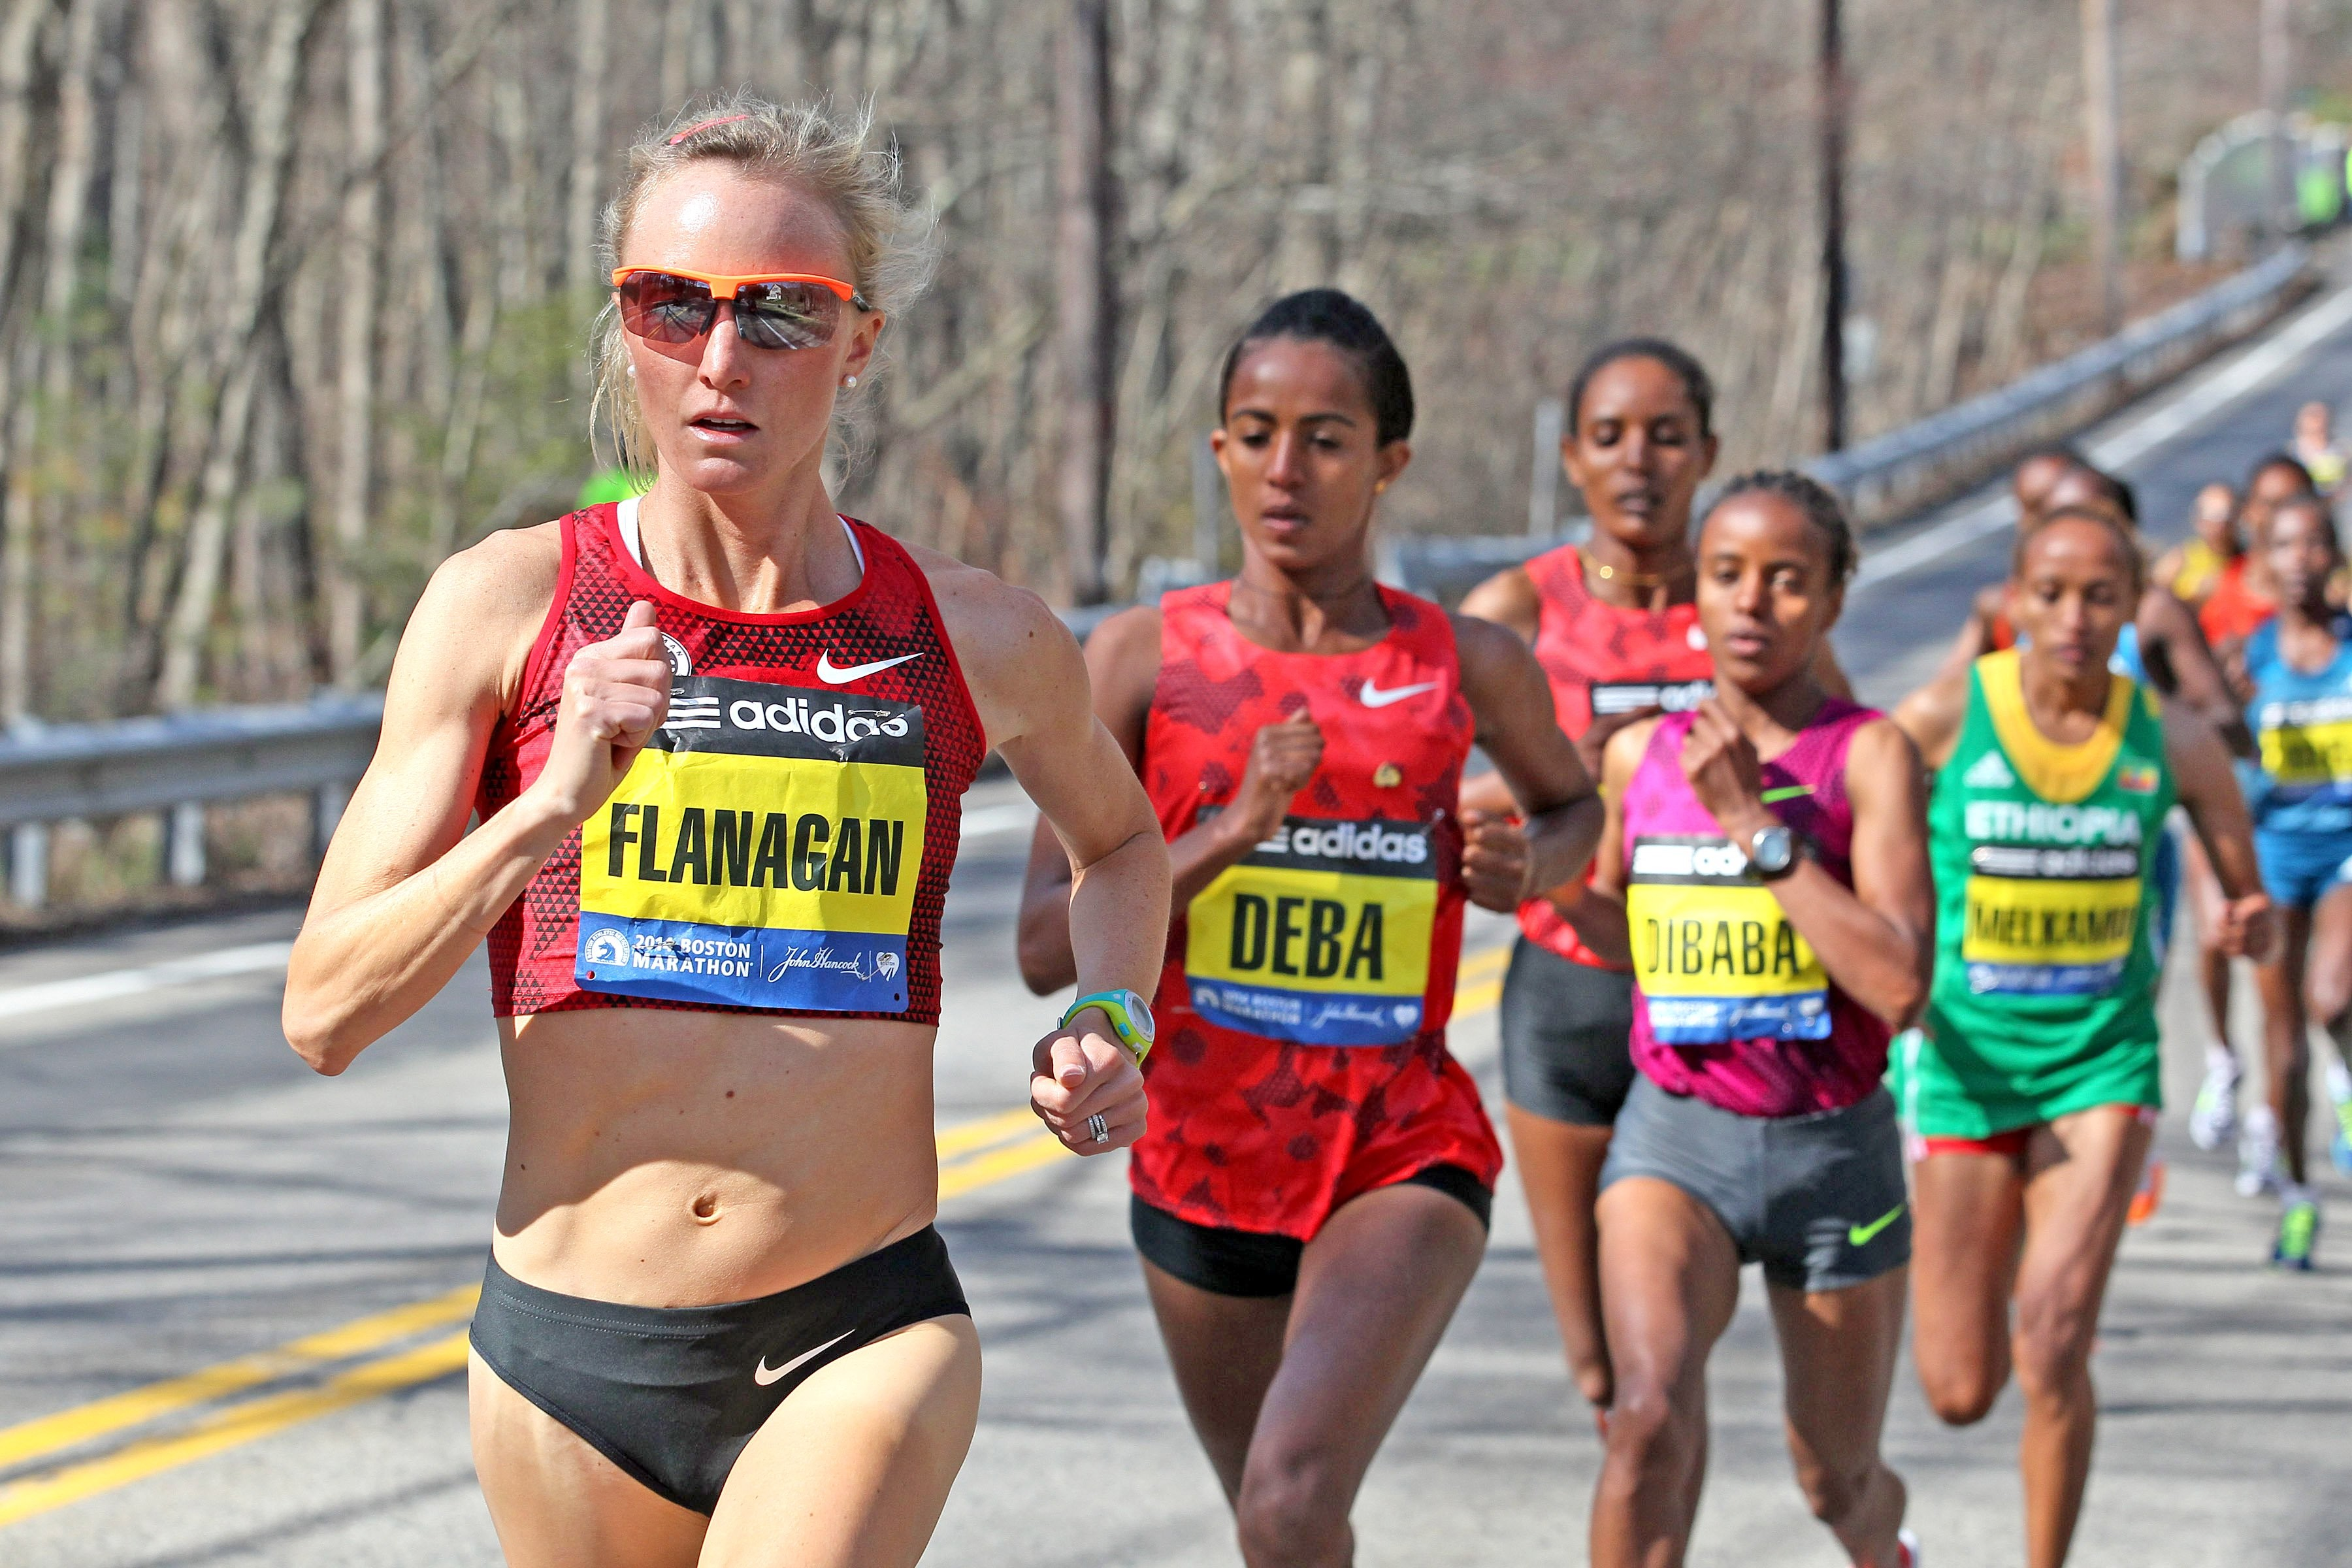 Shalane Flanagan Is Confirmed for Boston!